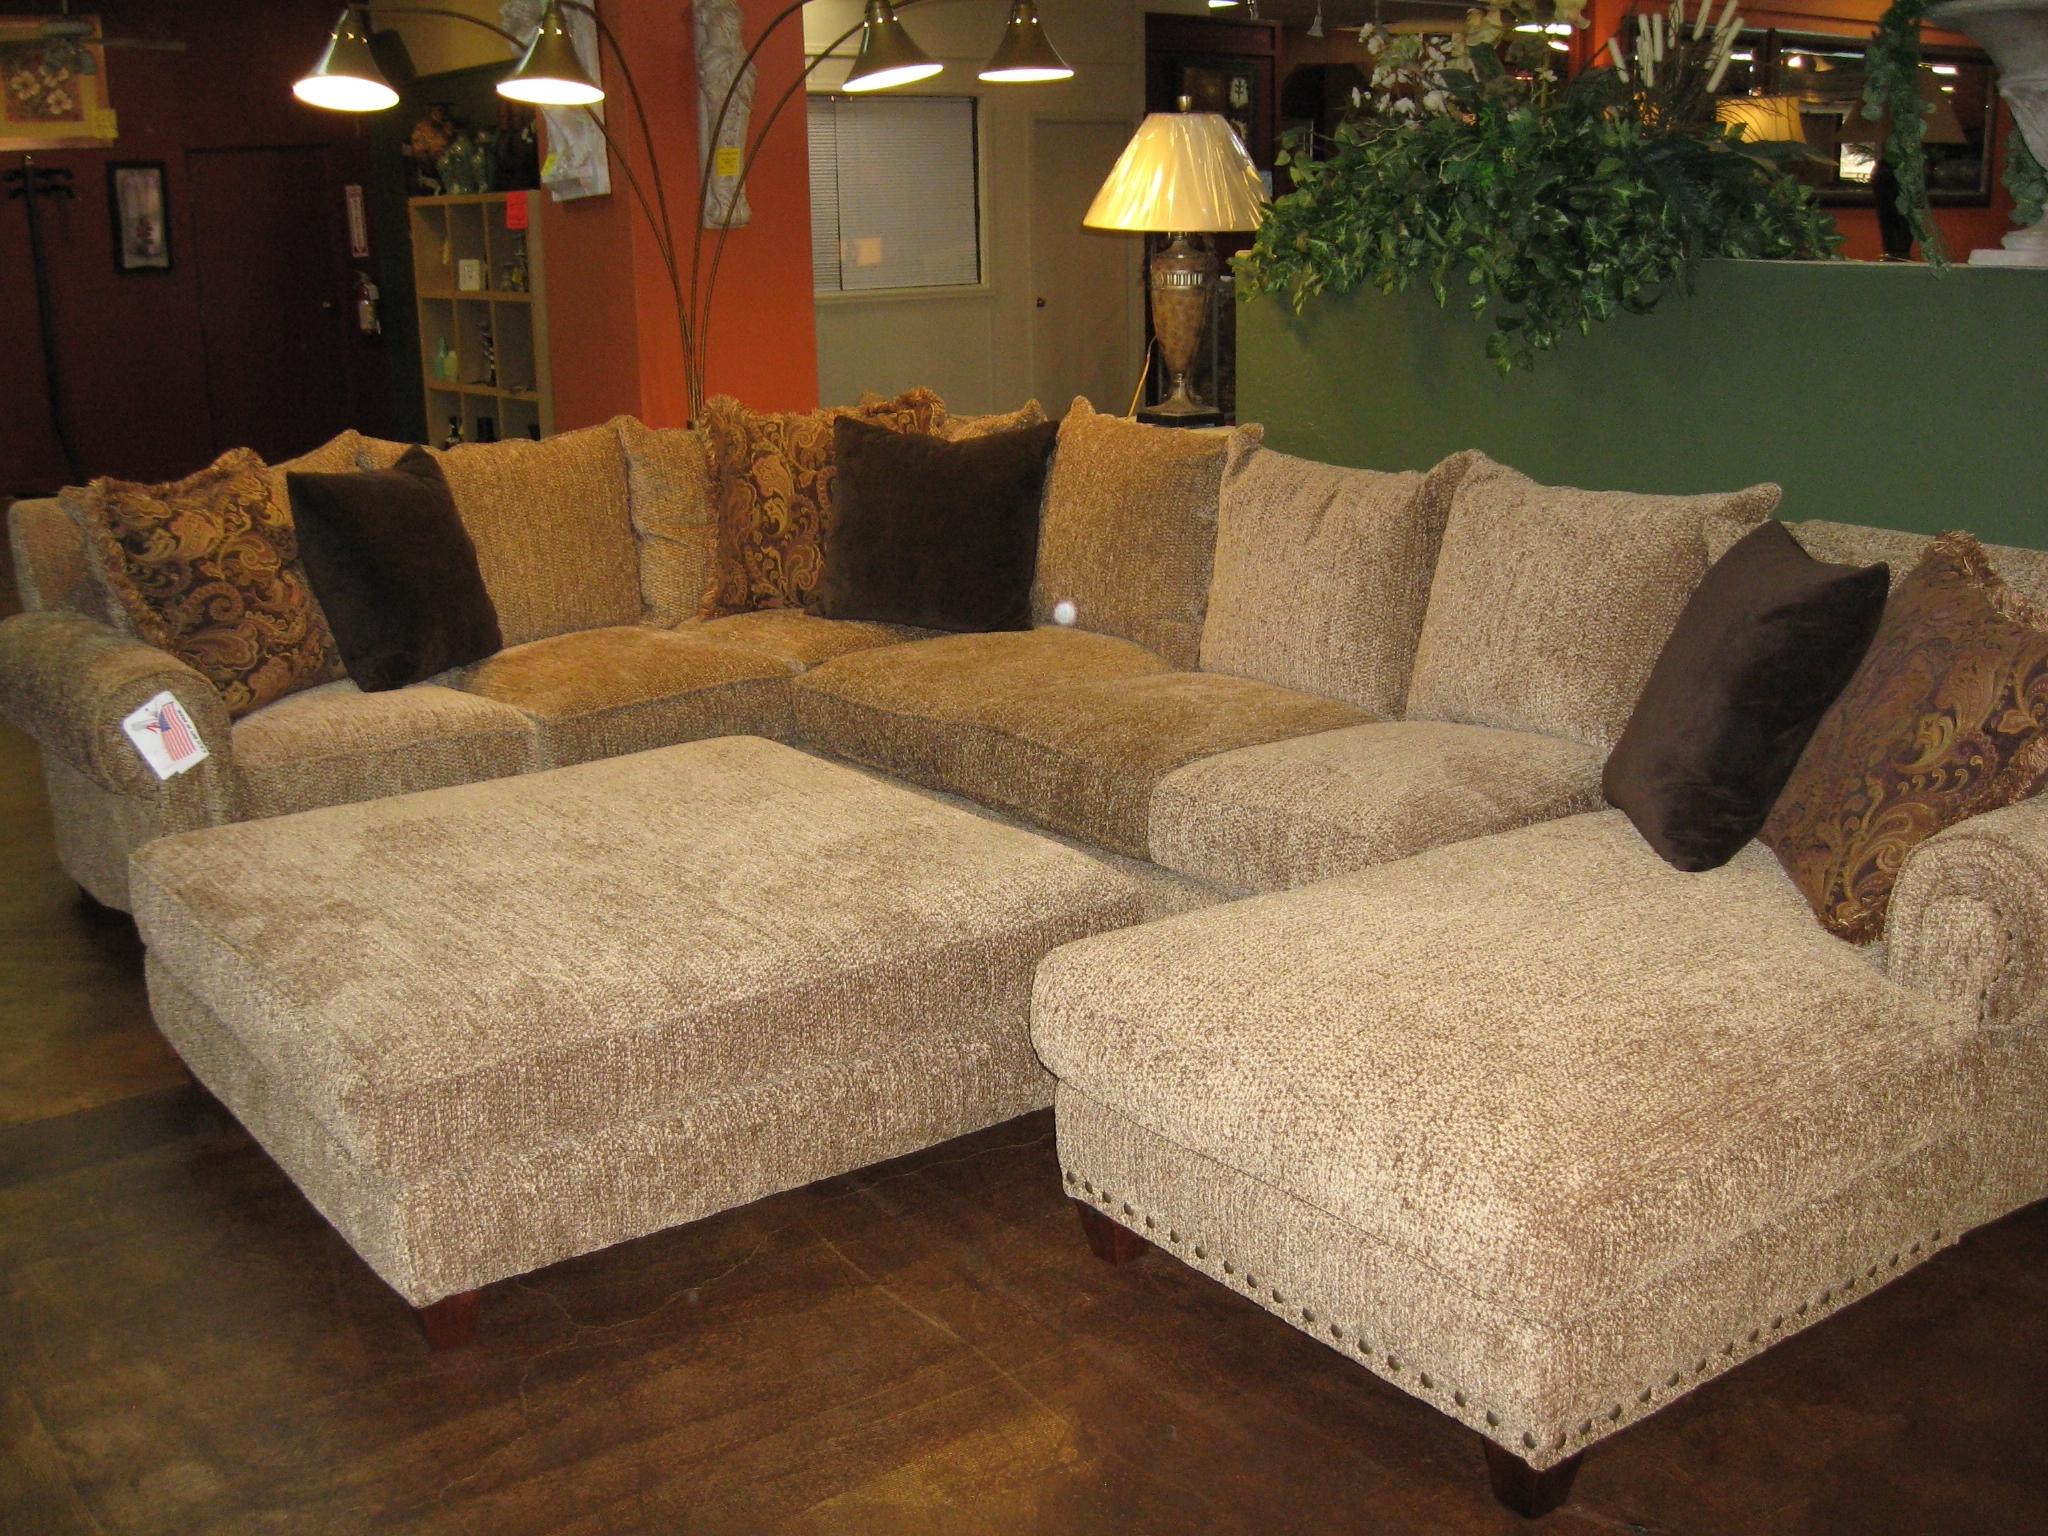 Preferred Elegant Large Sectional Sofa With Ottoman 52 With Additional Pertaining To Sectional Couches With Large Ottoman (View 6 of 20)